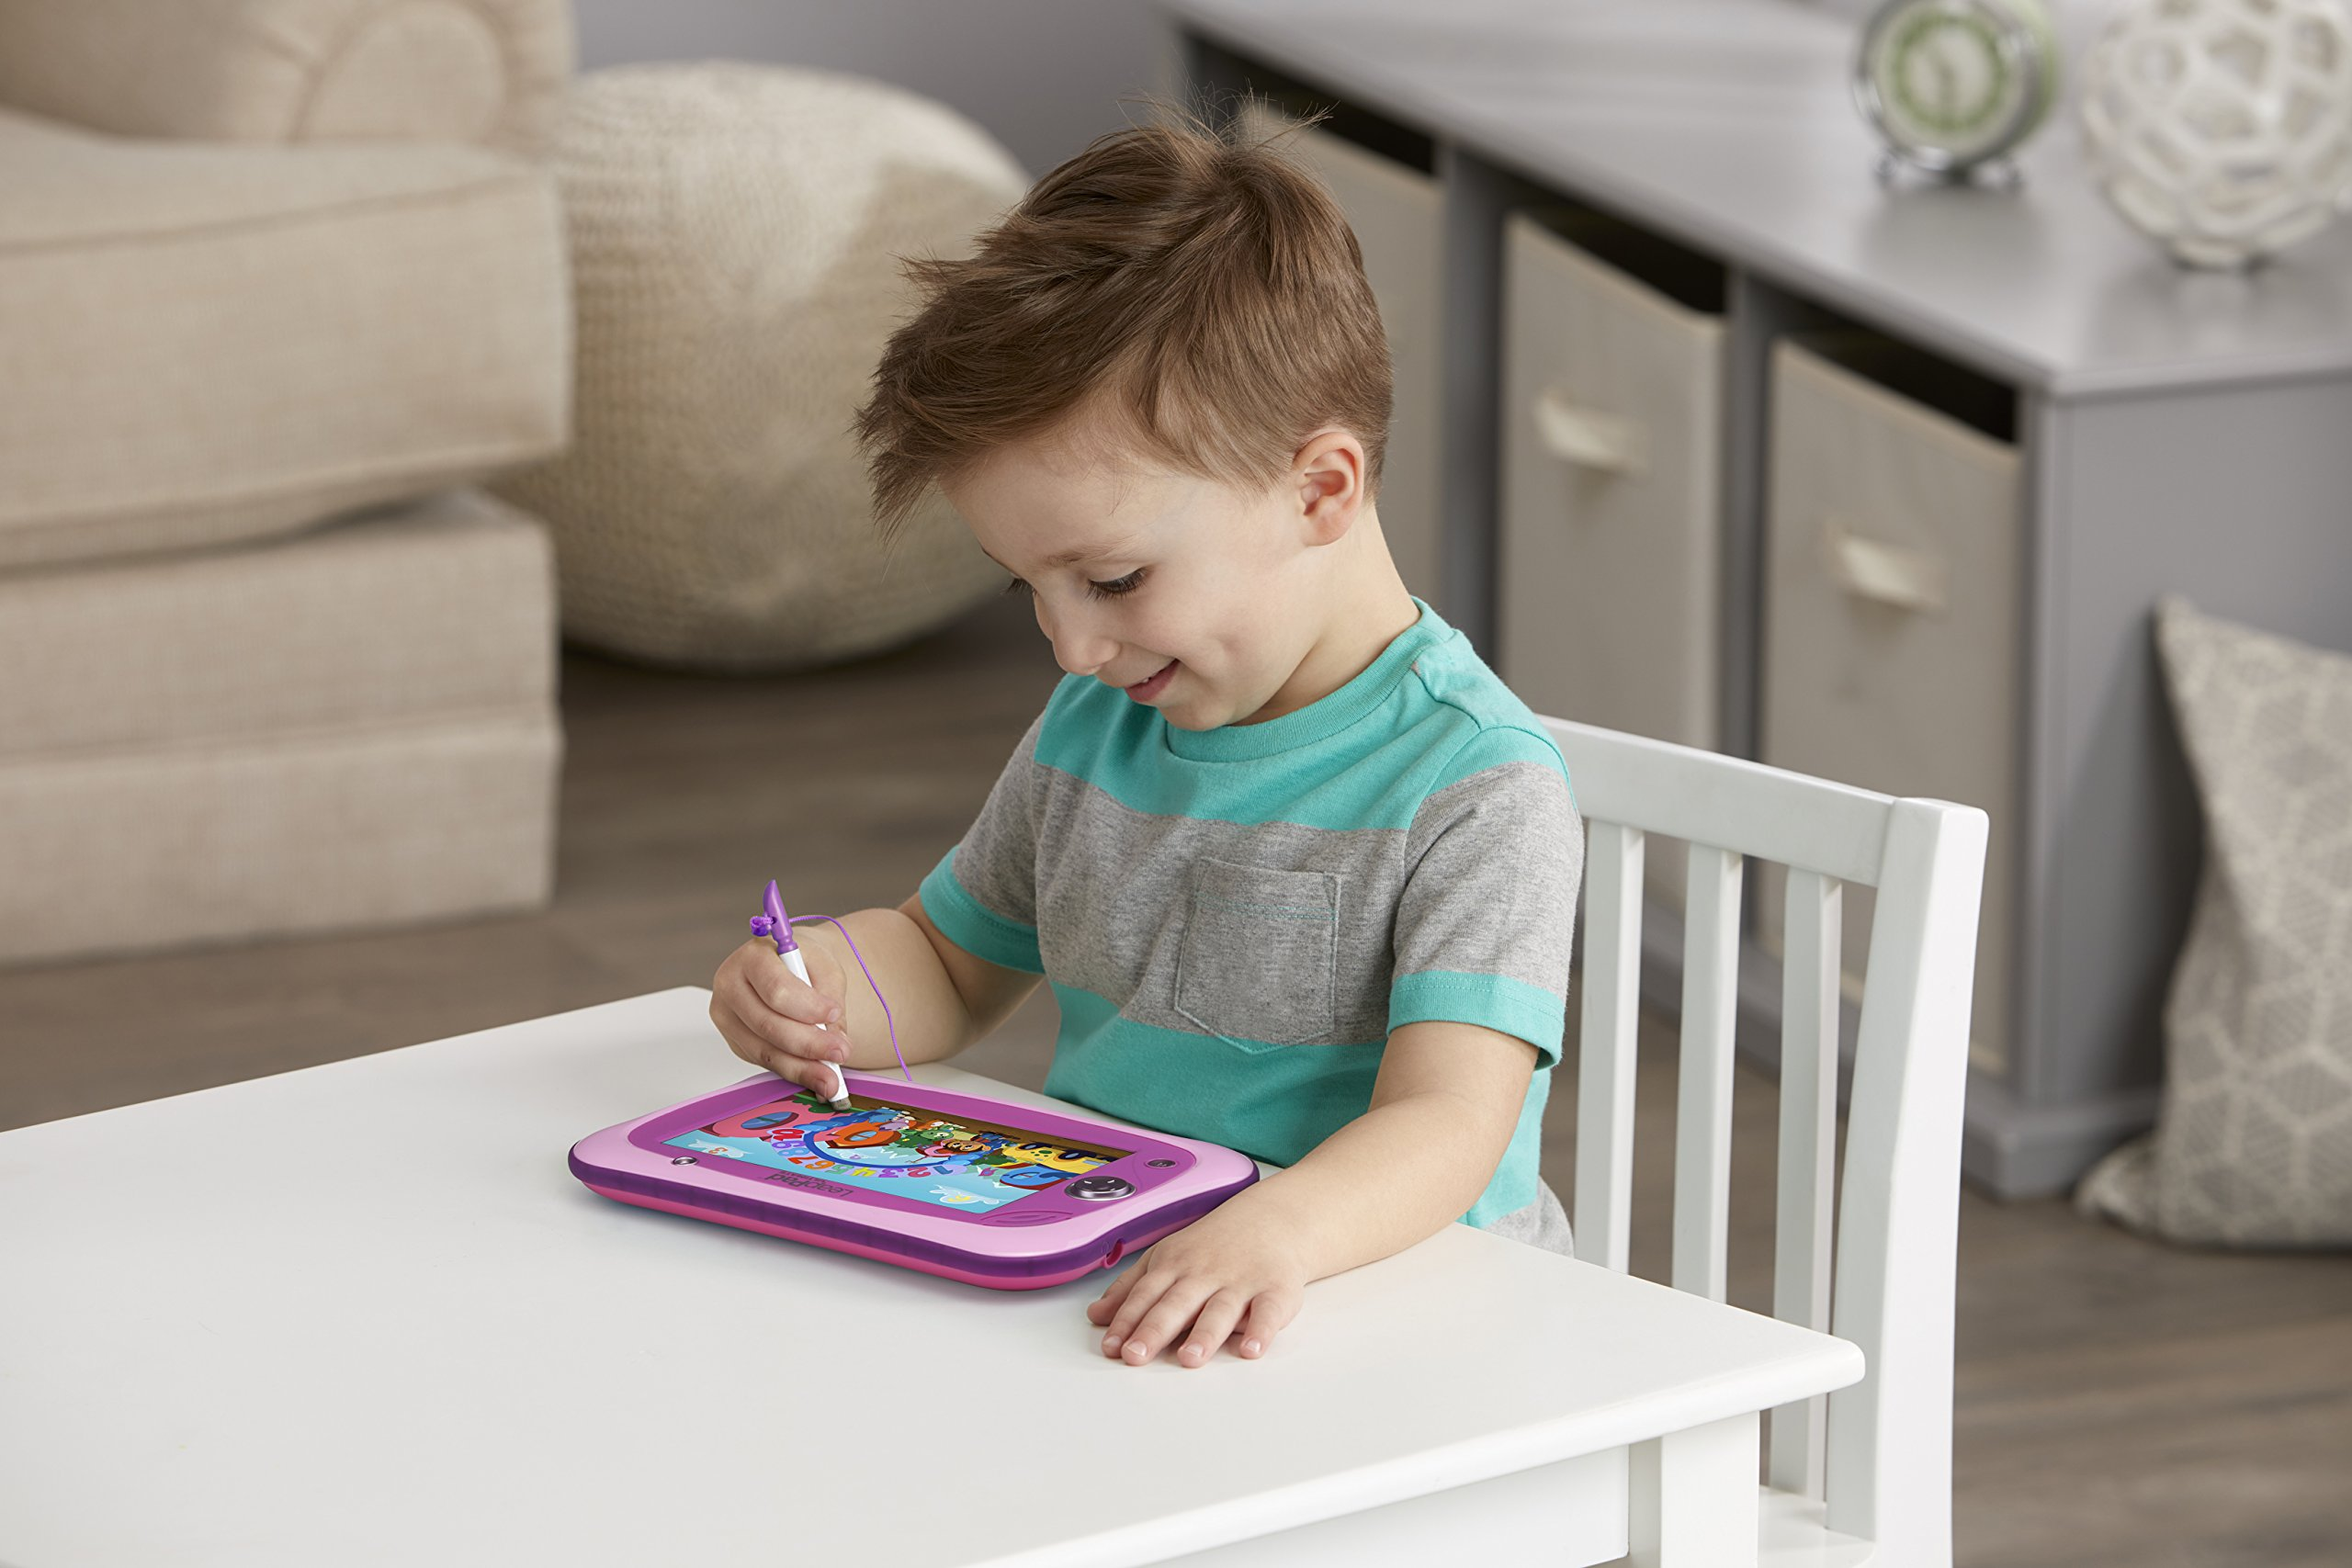 LeapFrog LeapPad Ultimate Ready for School Tablet, Pink by LeapFrog (Image #6)